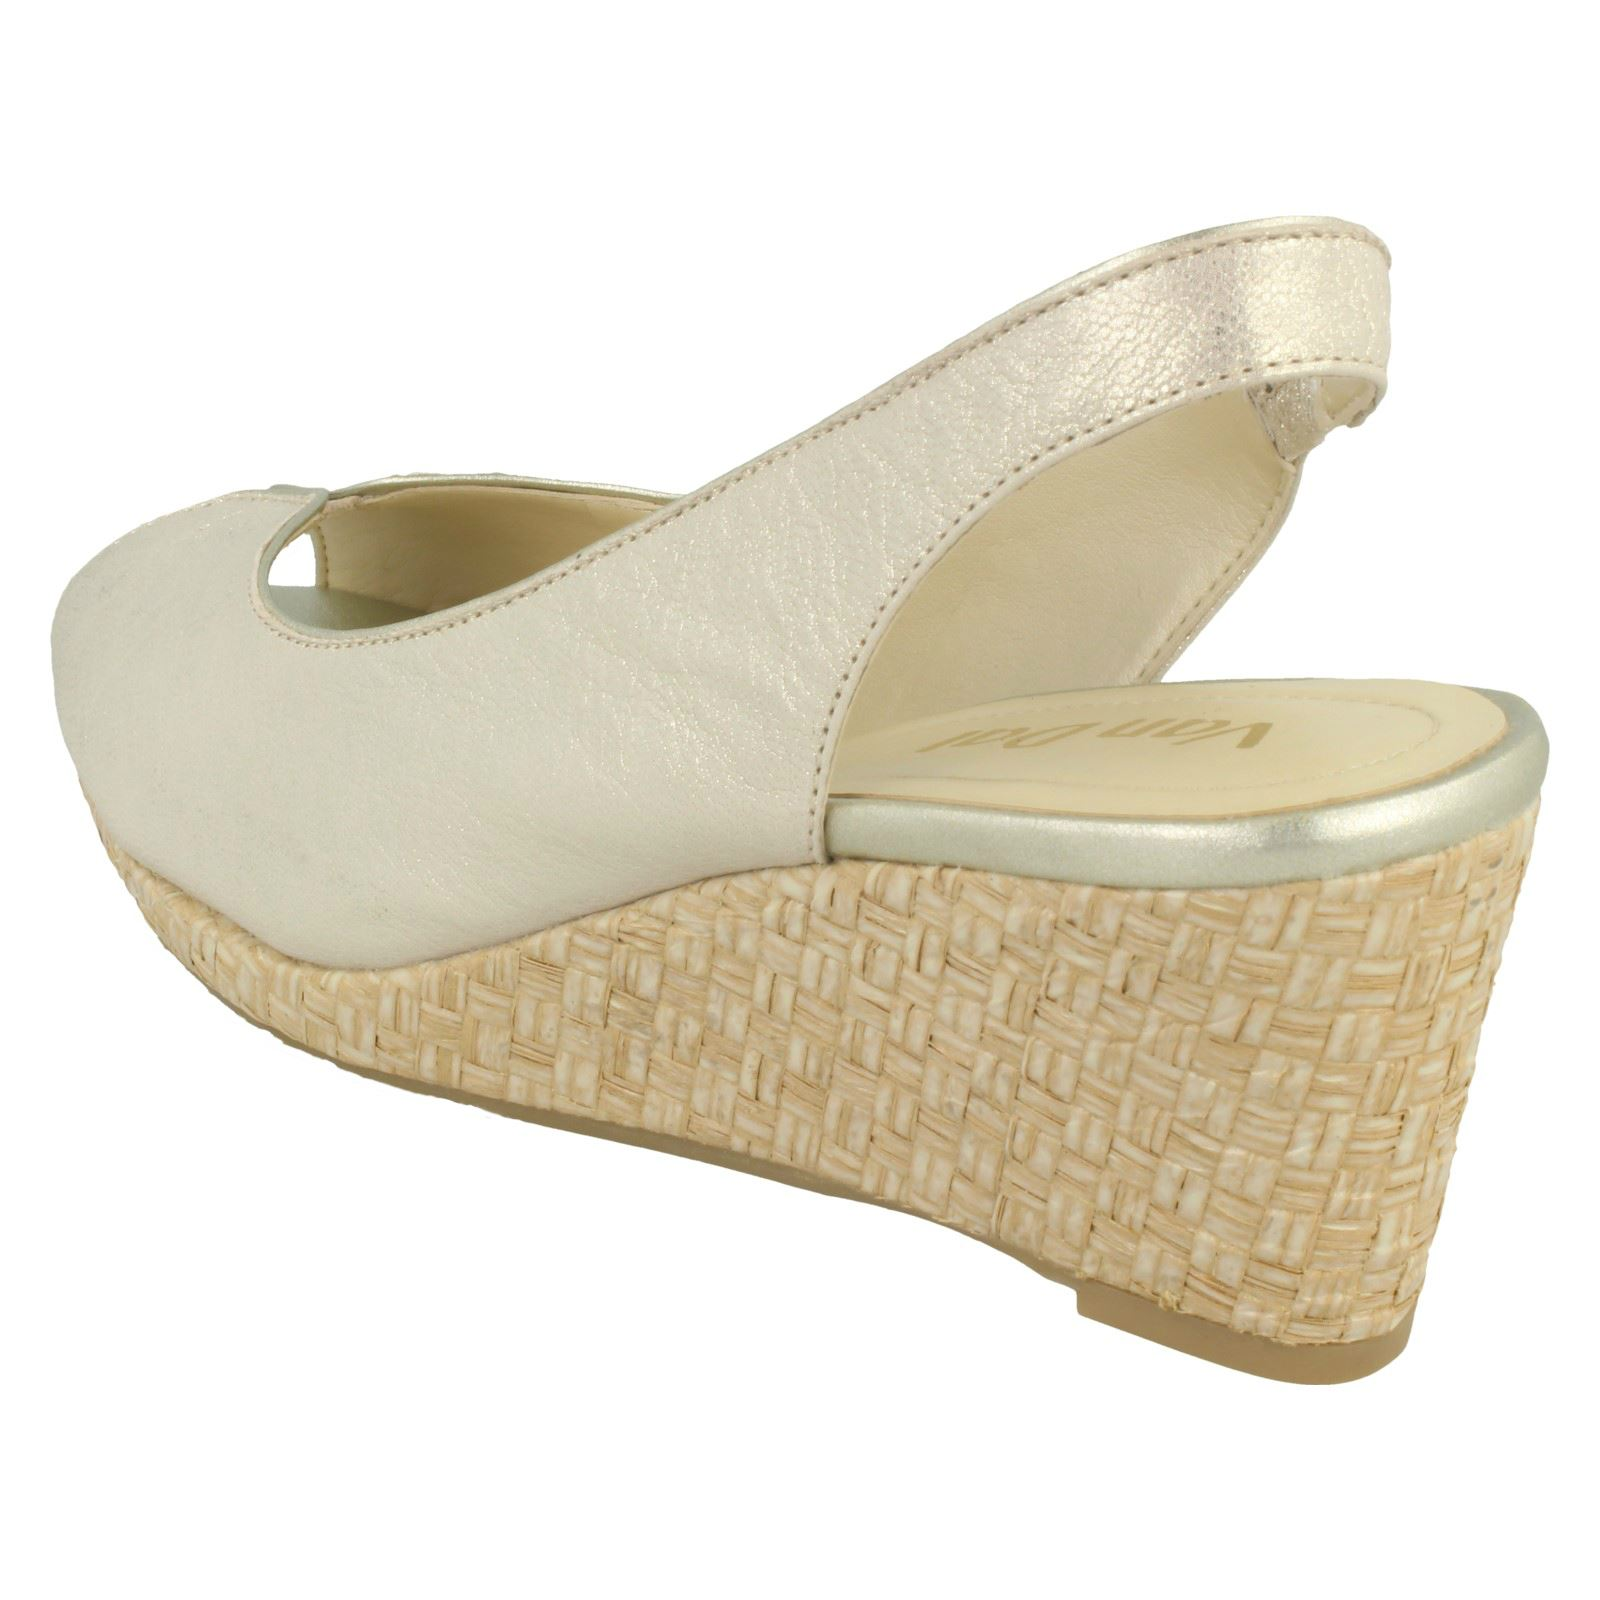 Ladies-Van-Dal-Leather-Wedge-Sandal-With-Woven-Detail-Avalon thumbnail 18